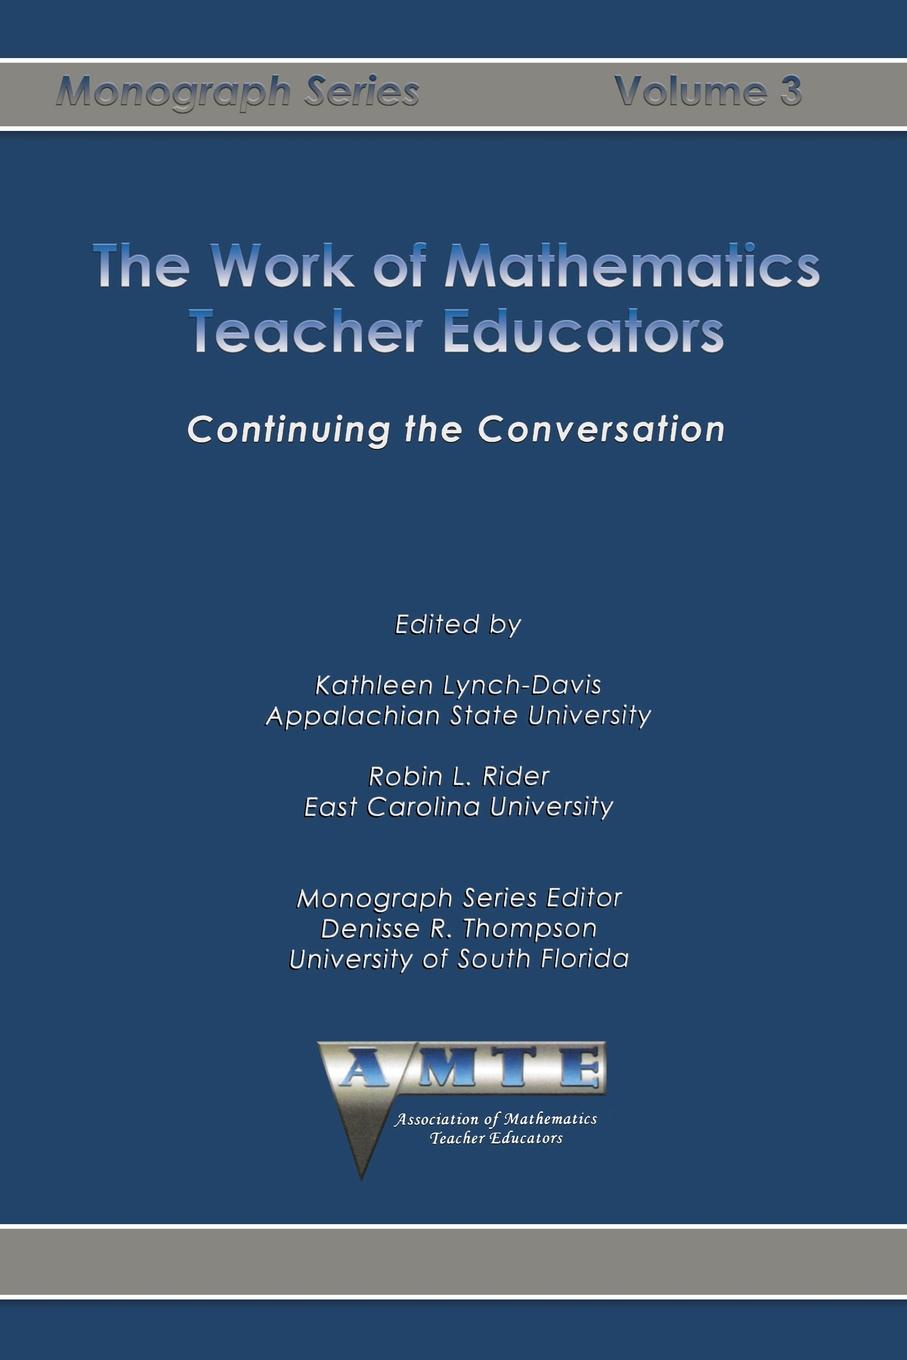 The Work of Mathematics Teacher Educators. Continuing the Conversation mathematics teacher education in the public interest equity and social justice